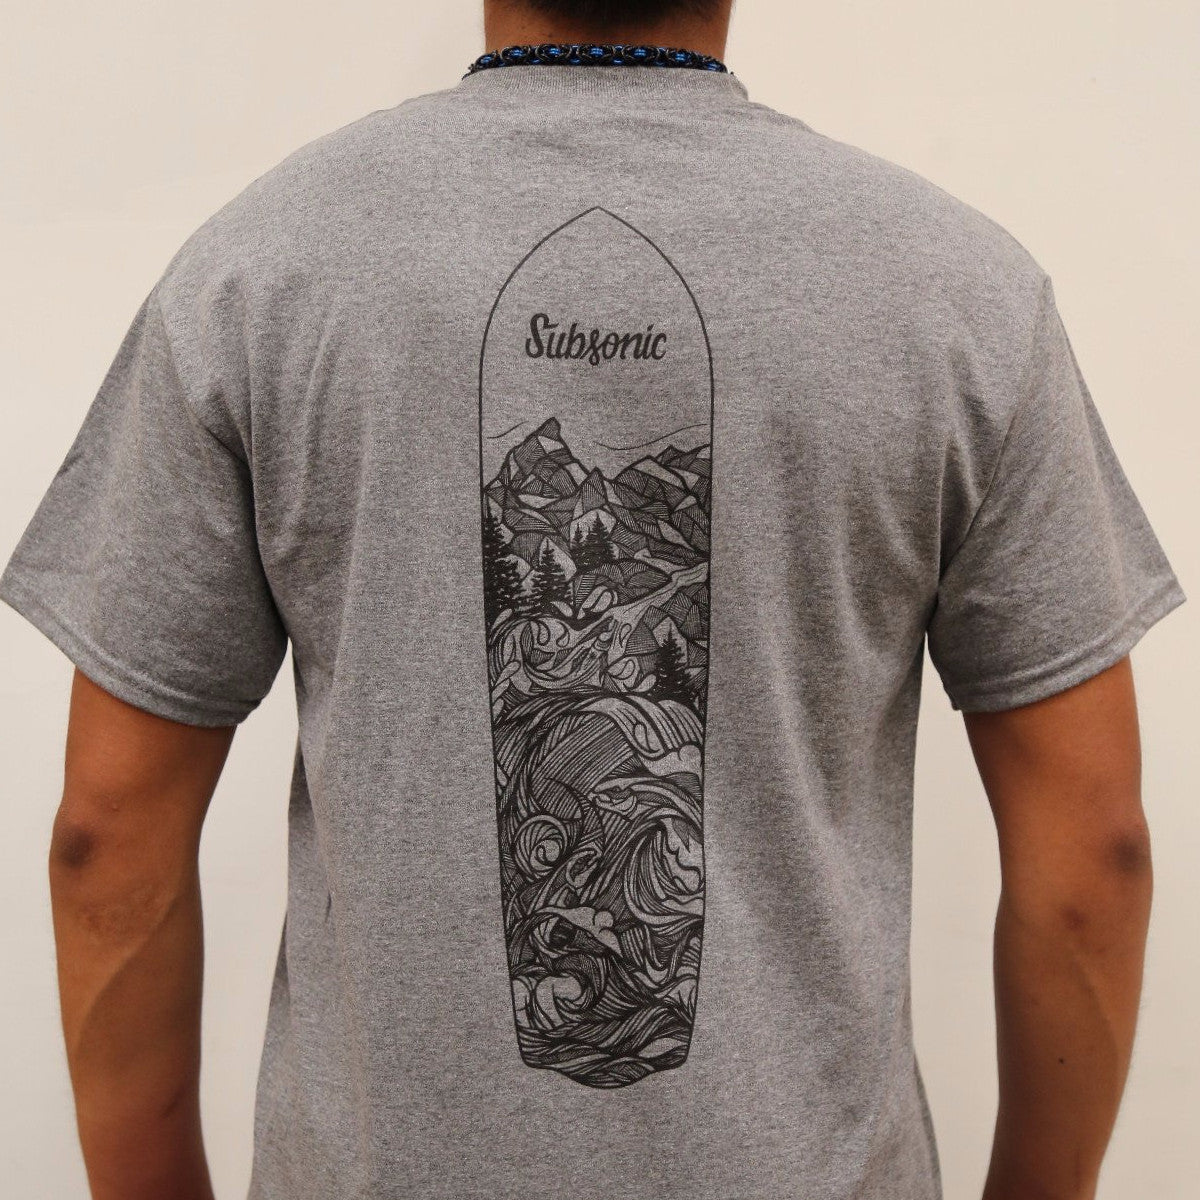 b96a2260991 Subsonic Graphic Tee - Mountains to Sound – Subsonic Skateboards